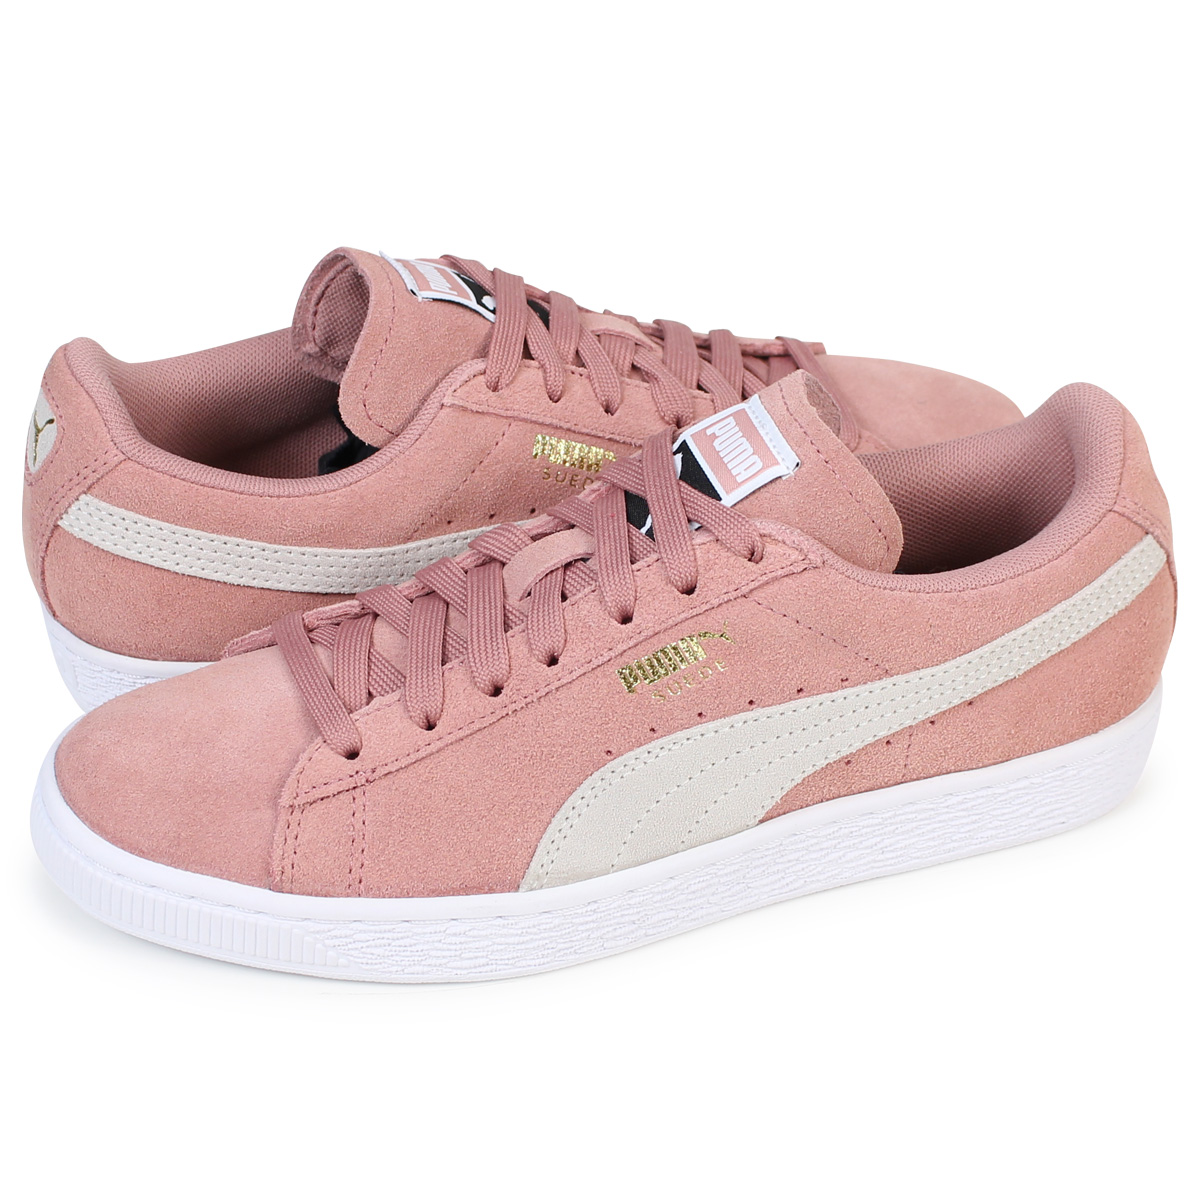 premium selection 02444 57945 PUMA SUEDE CLASSIC WMNS Puma suede classical music Lady's sneakers  355,462-56 men's shoes pink [load planned Shinnyu load in reservation  product 12/14 ...